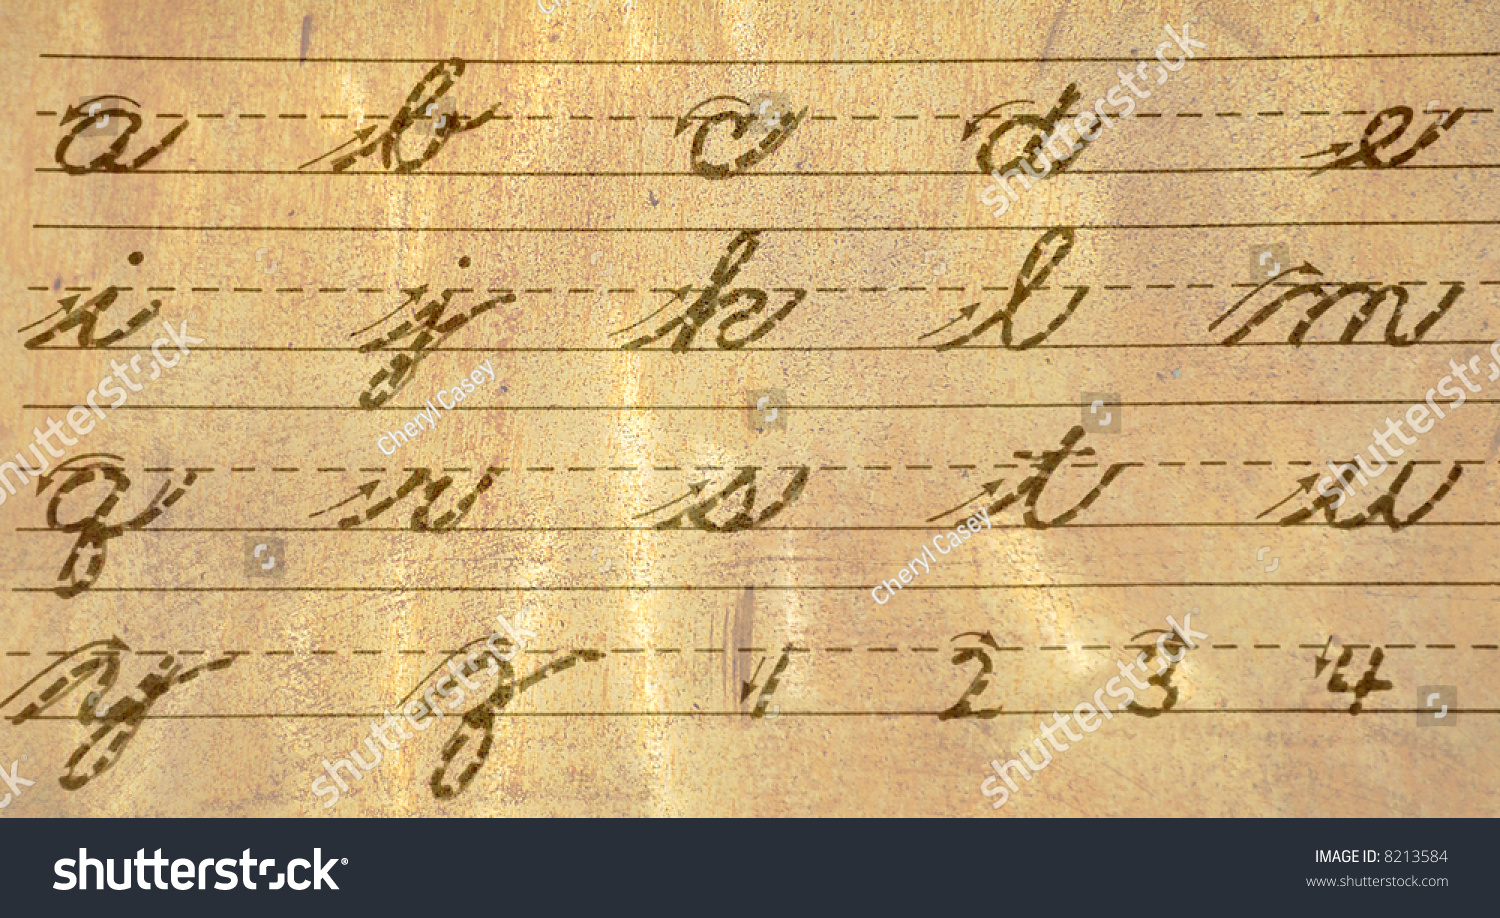 Old Fashioned Handwriting Alphabet 23